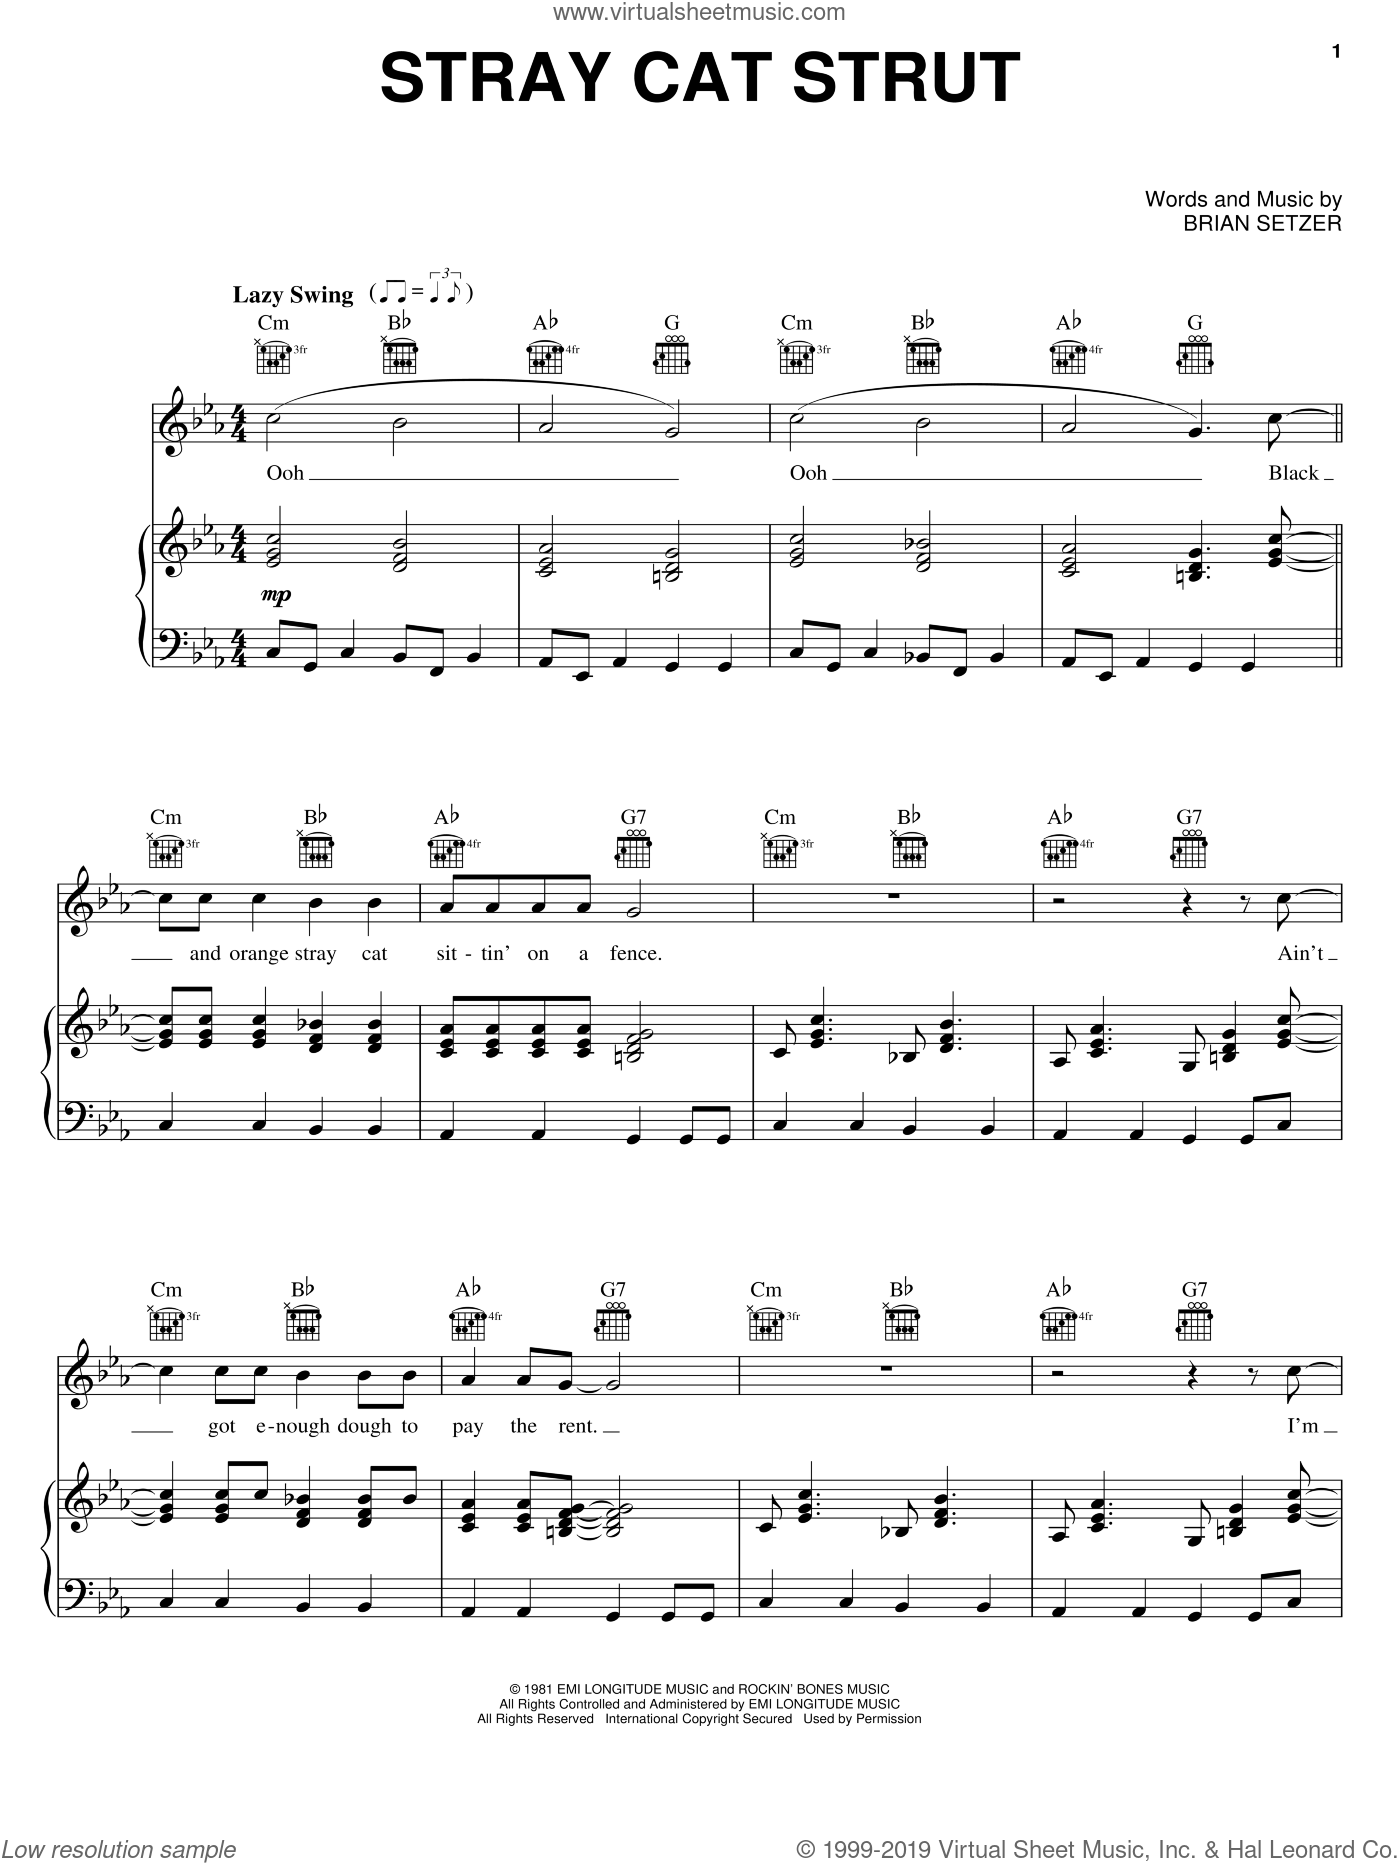 Stray Cat Strut sheet music for voice, piano or guitar by Stray Cats and Brian Setzer, intermediate skill level